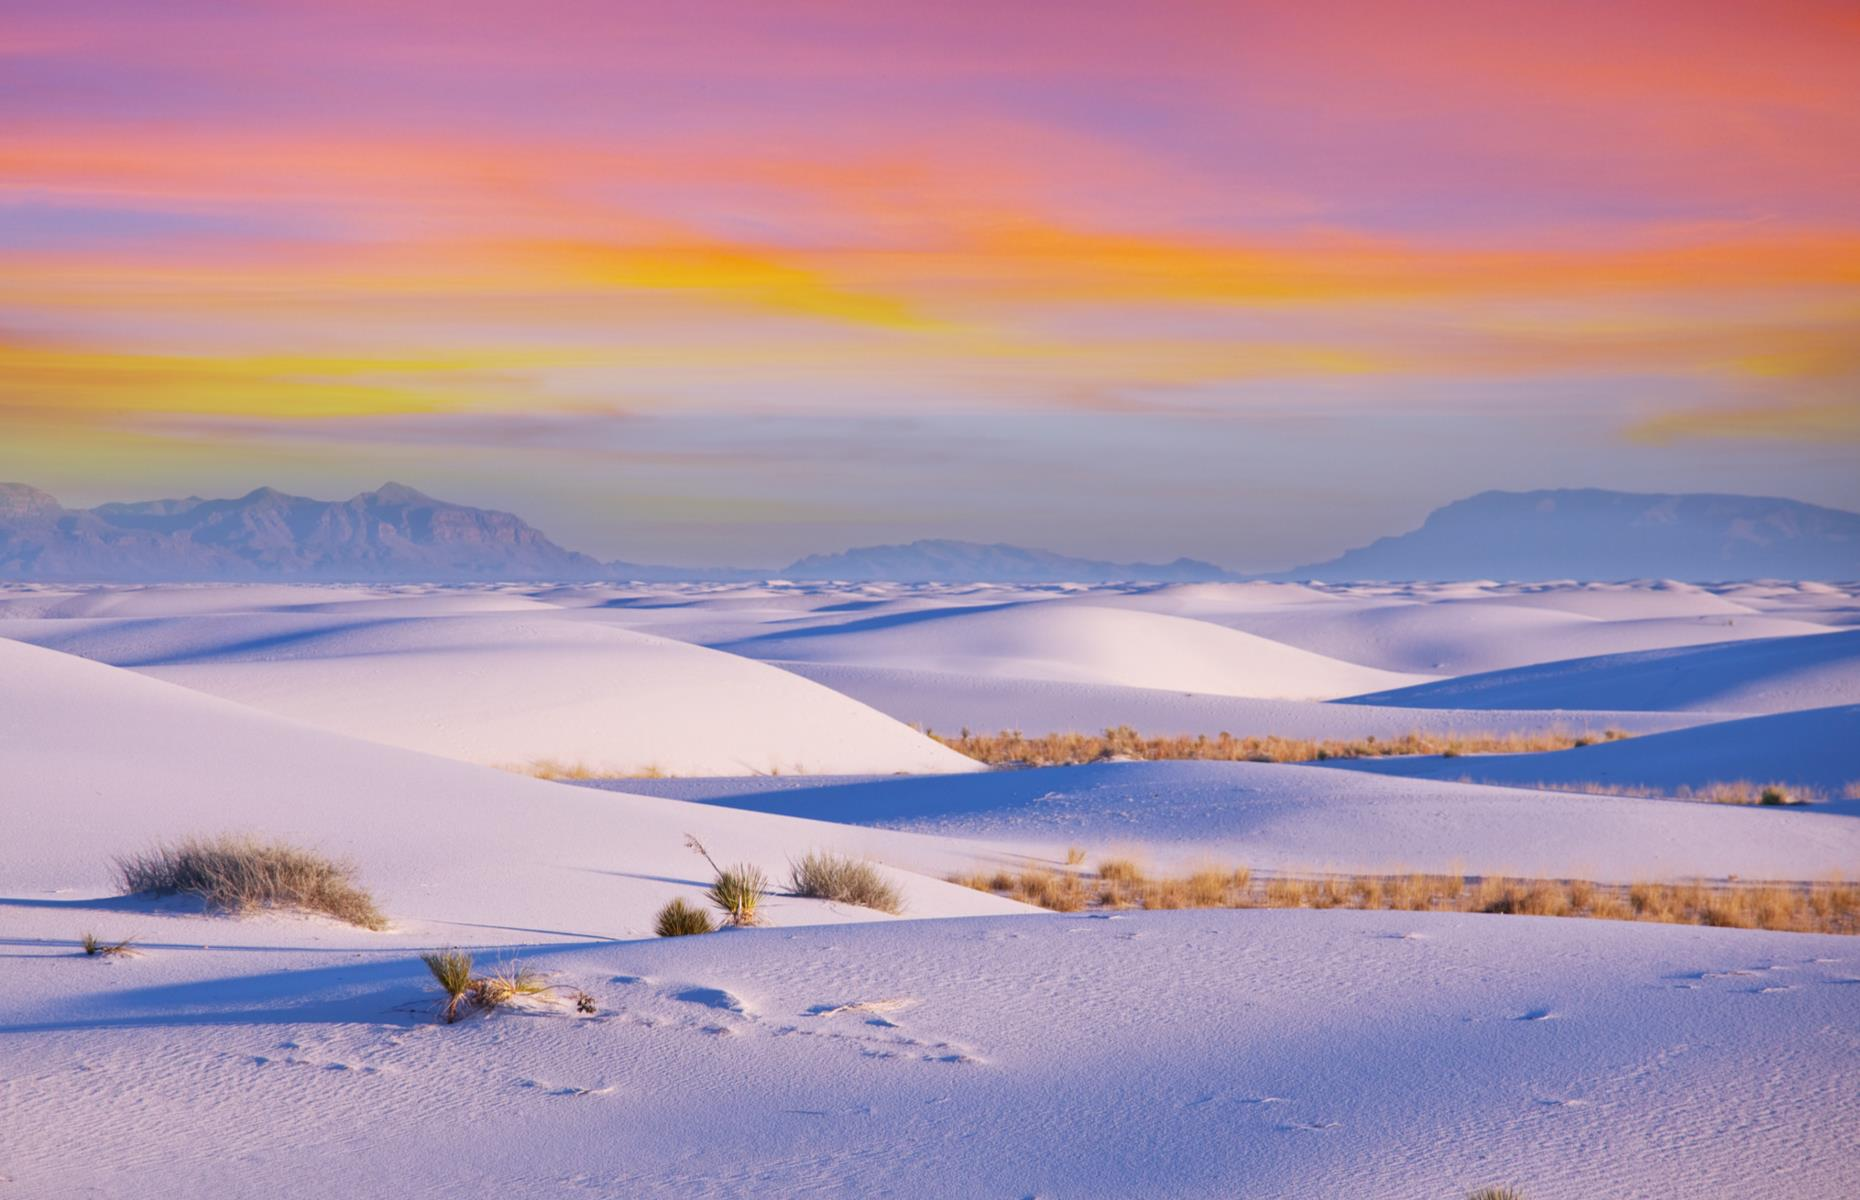 Slide 32 of 51: It's hard to believe a landscape like this exists anywhere on Earth, let alone in New Mexico. At first glance, White Sands National Monument looks like a snowscape, with bright white waves rolling for miles. The dunes look even starker at dawn, when ocher and pink-streaked skies pop against the icing-sugar-colored sand.